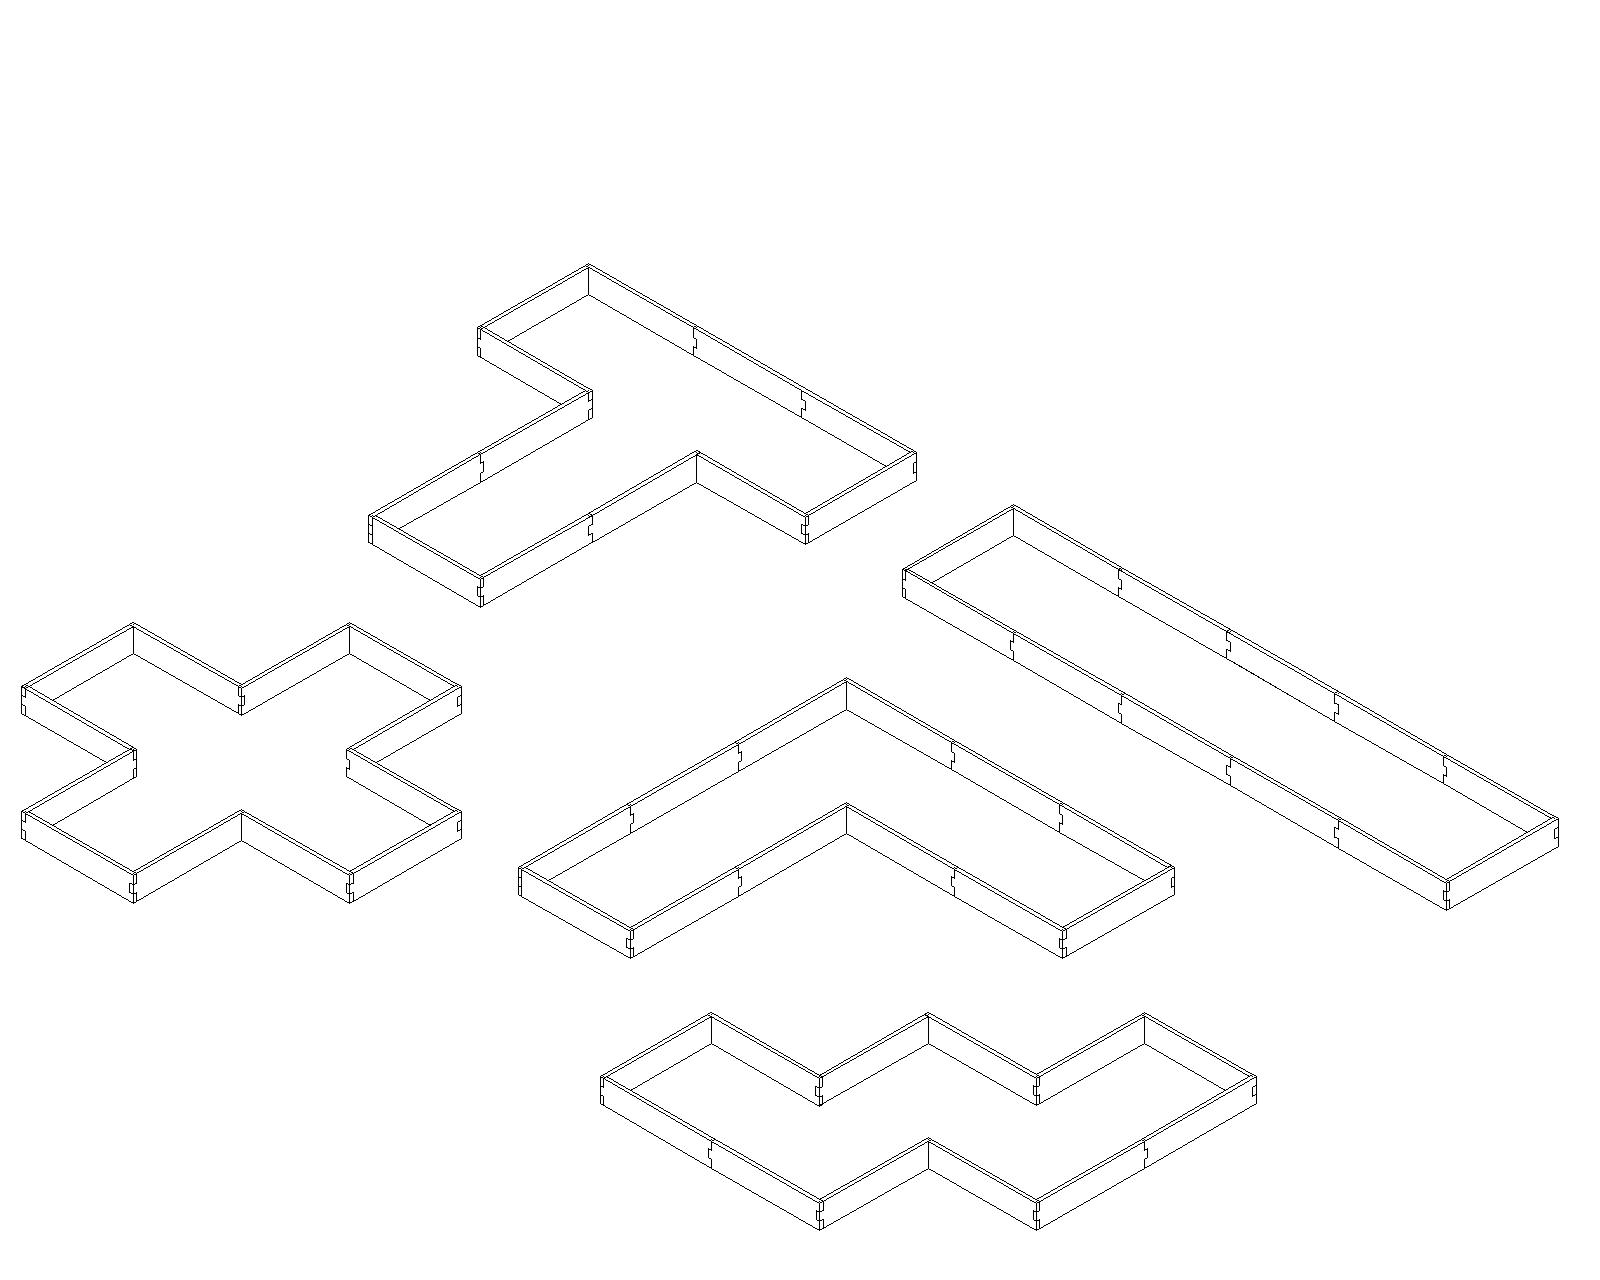 Alternate Layouts For The U Shaped Raised Garden